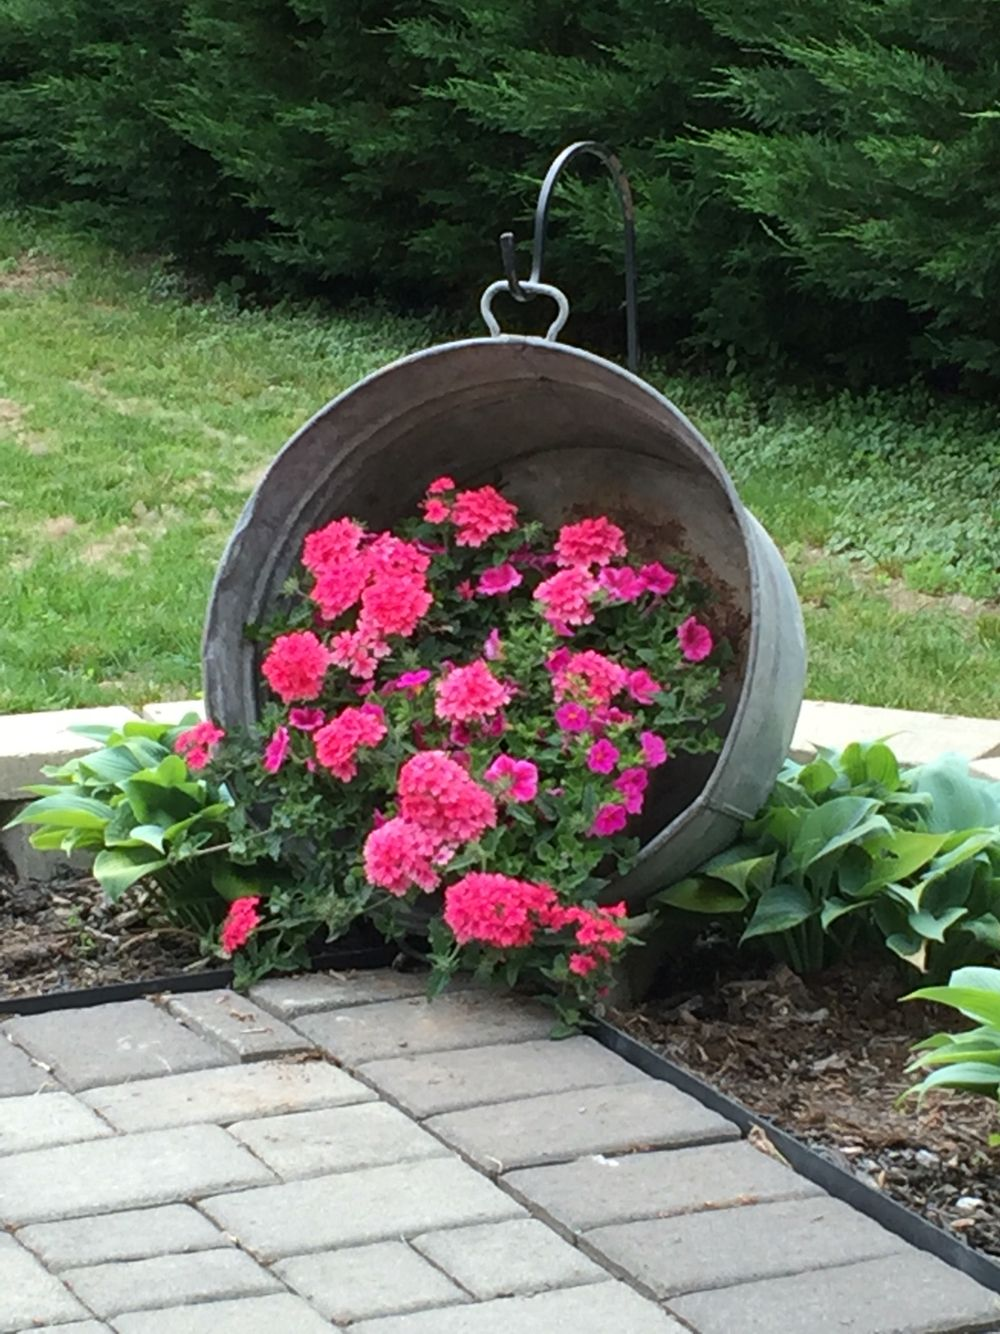 Pinterest Garten Frisch Hanging Washtub with Flowers Saw This On Pinterest Years